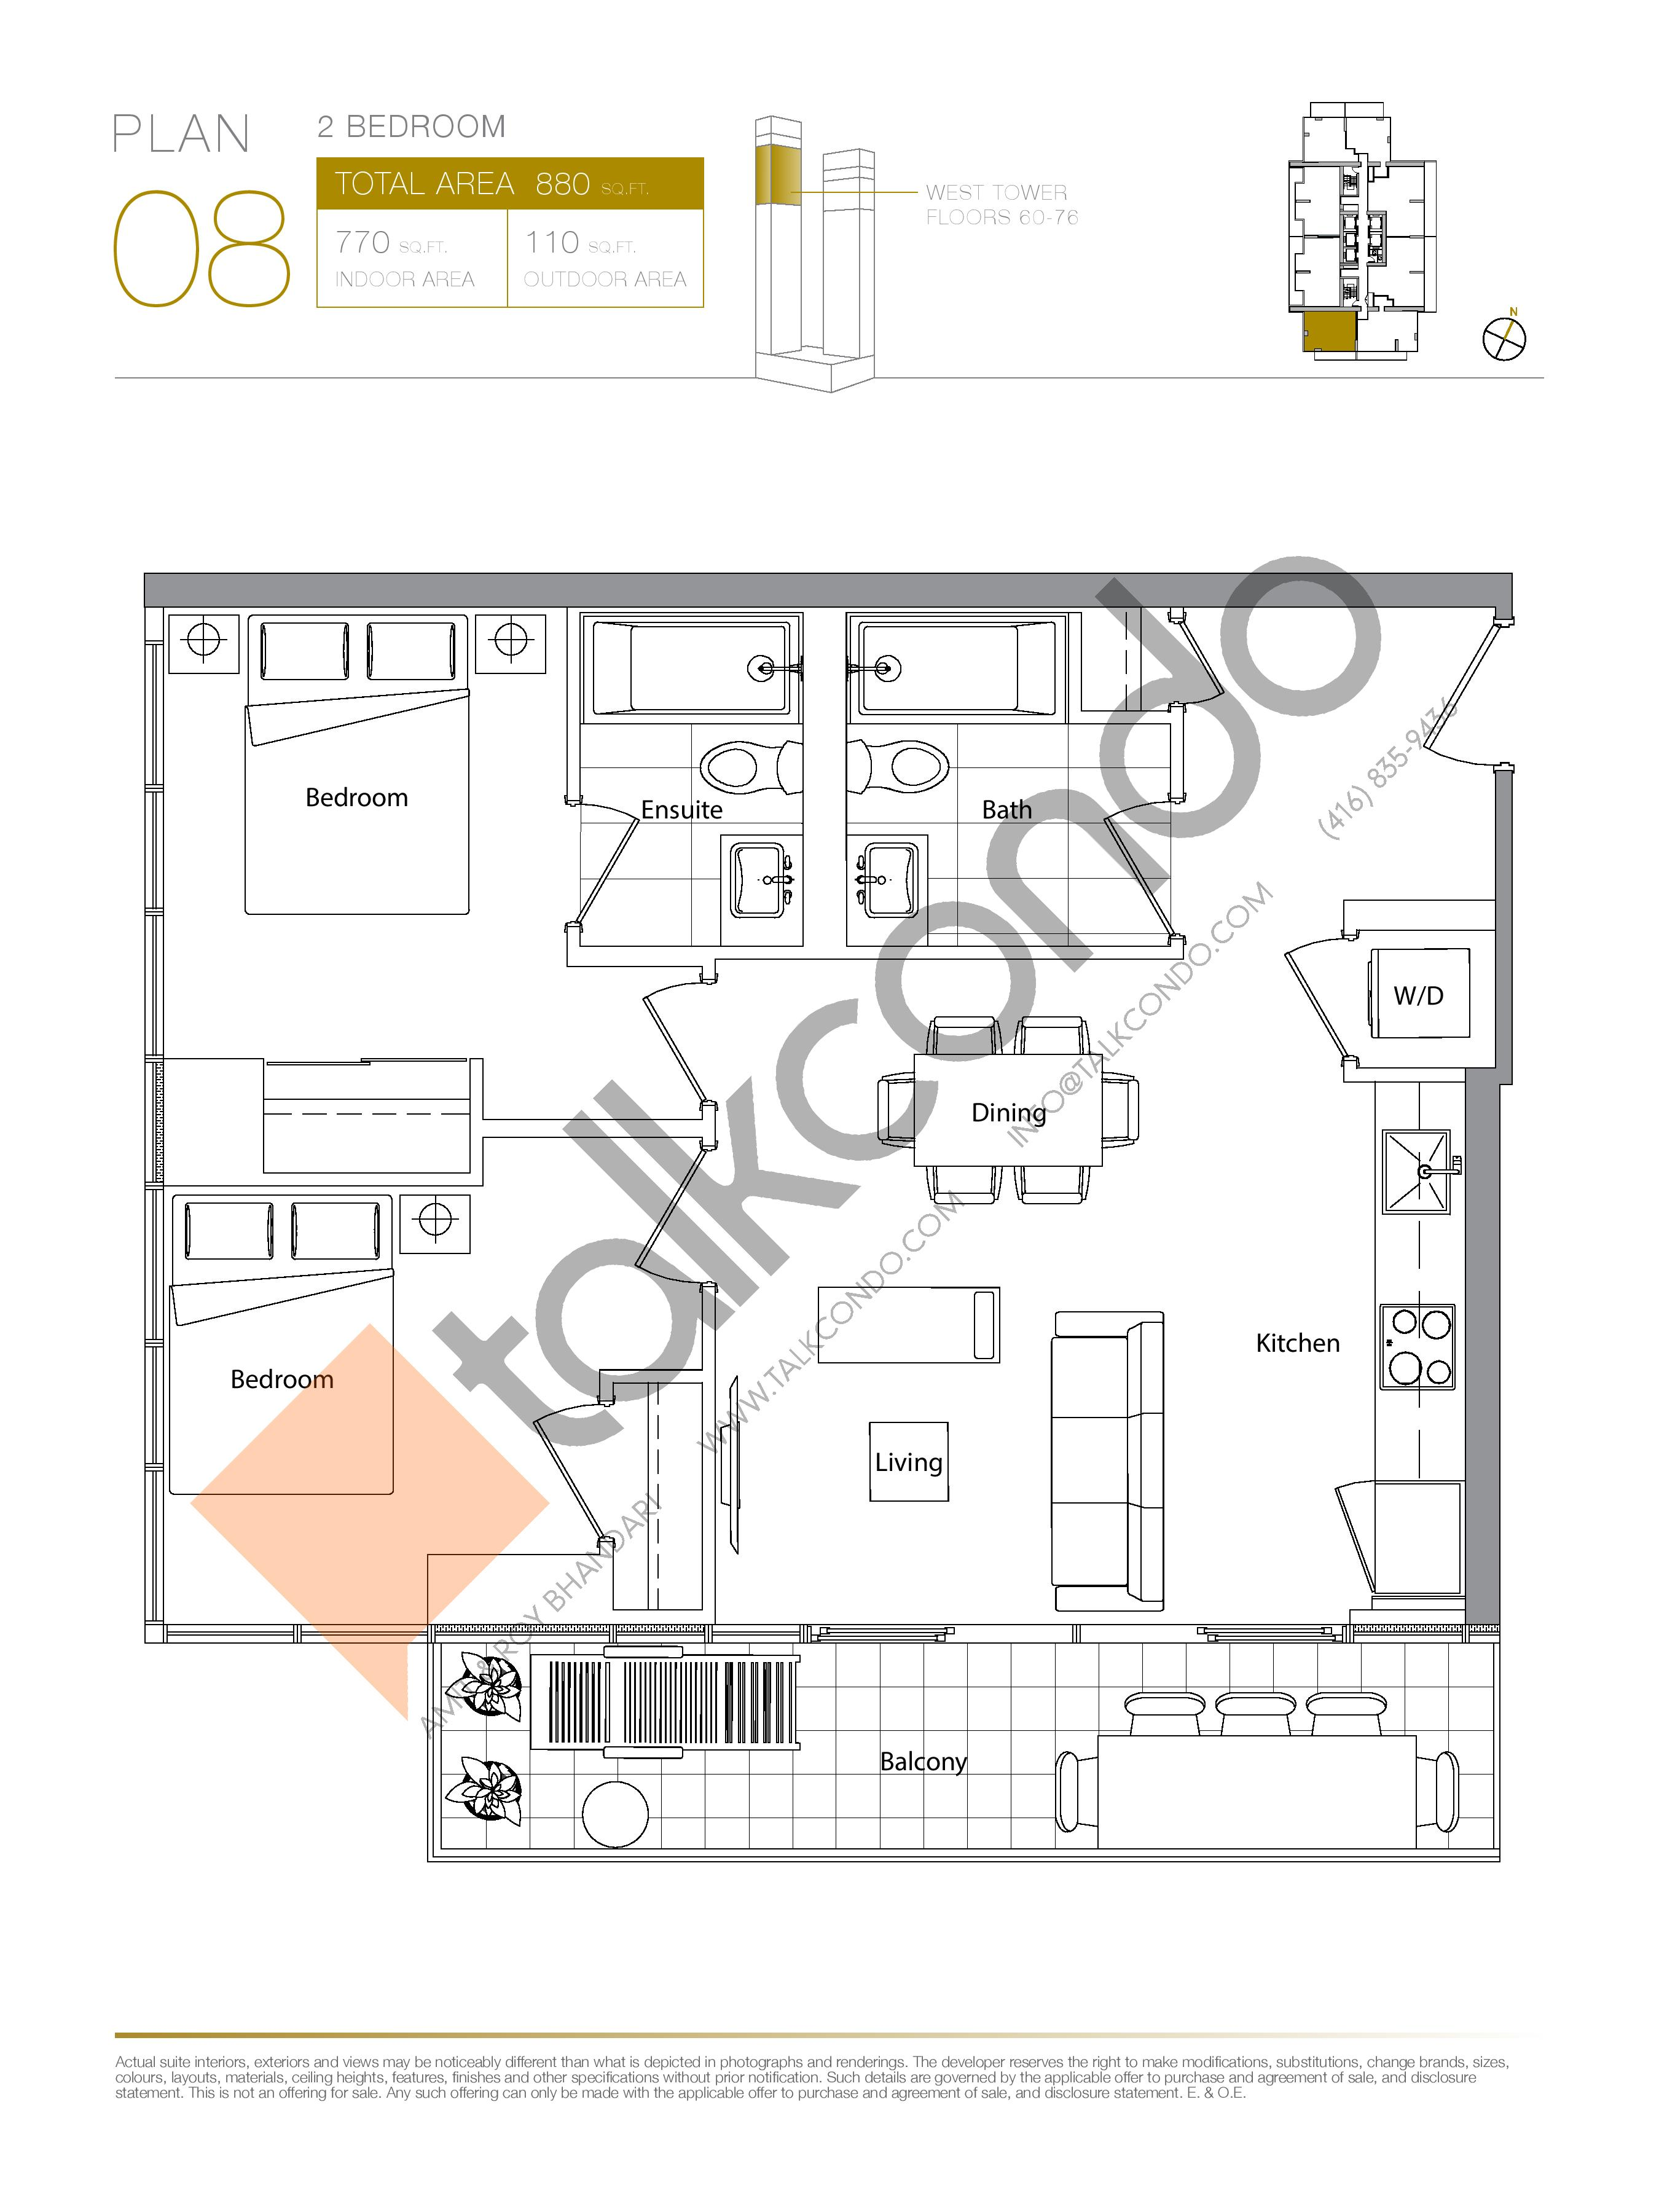 Plan 08 (New Release) Upper Floor Plan at Concord Canada House Condos - 770 sq.ft